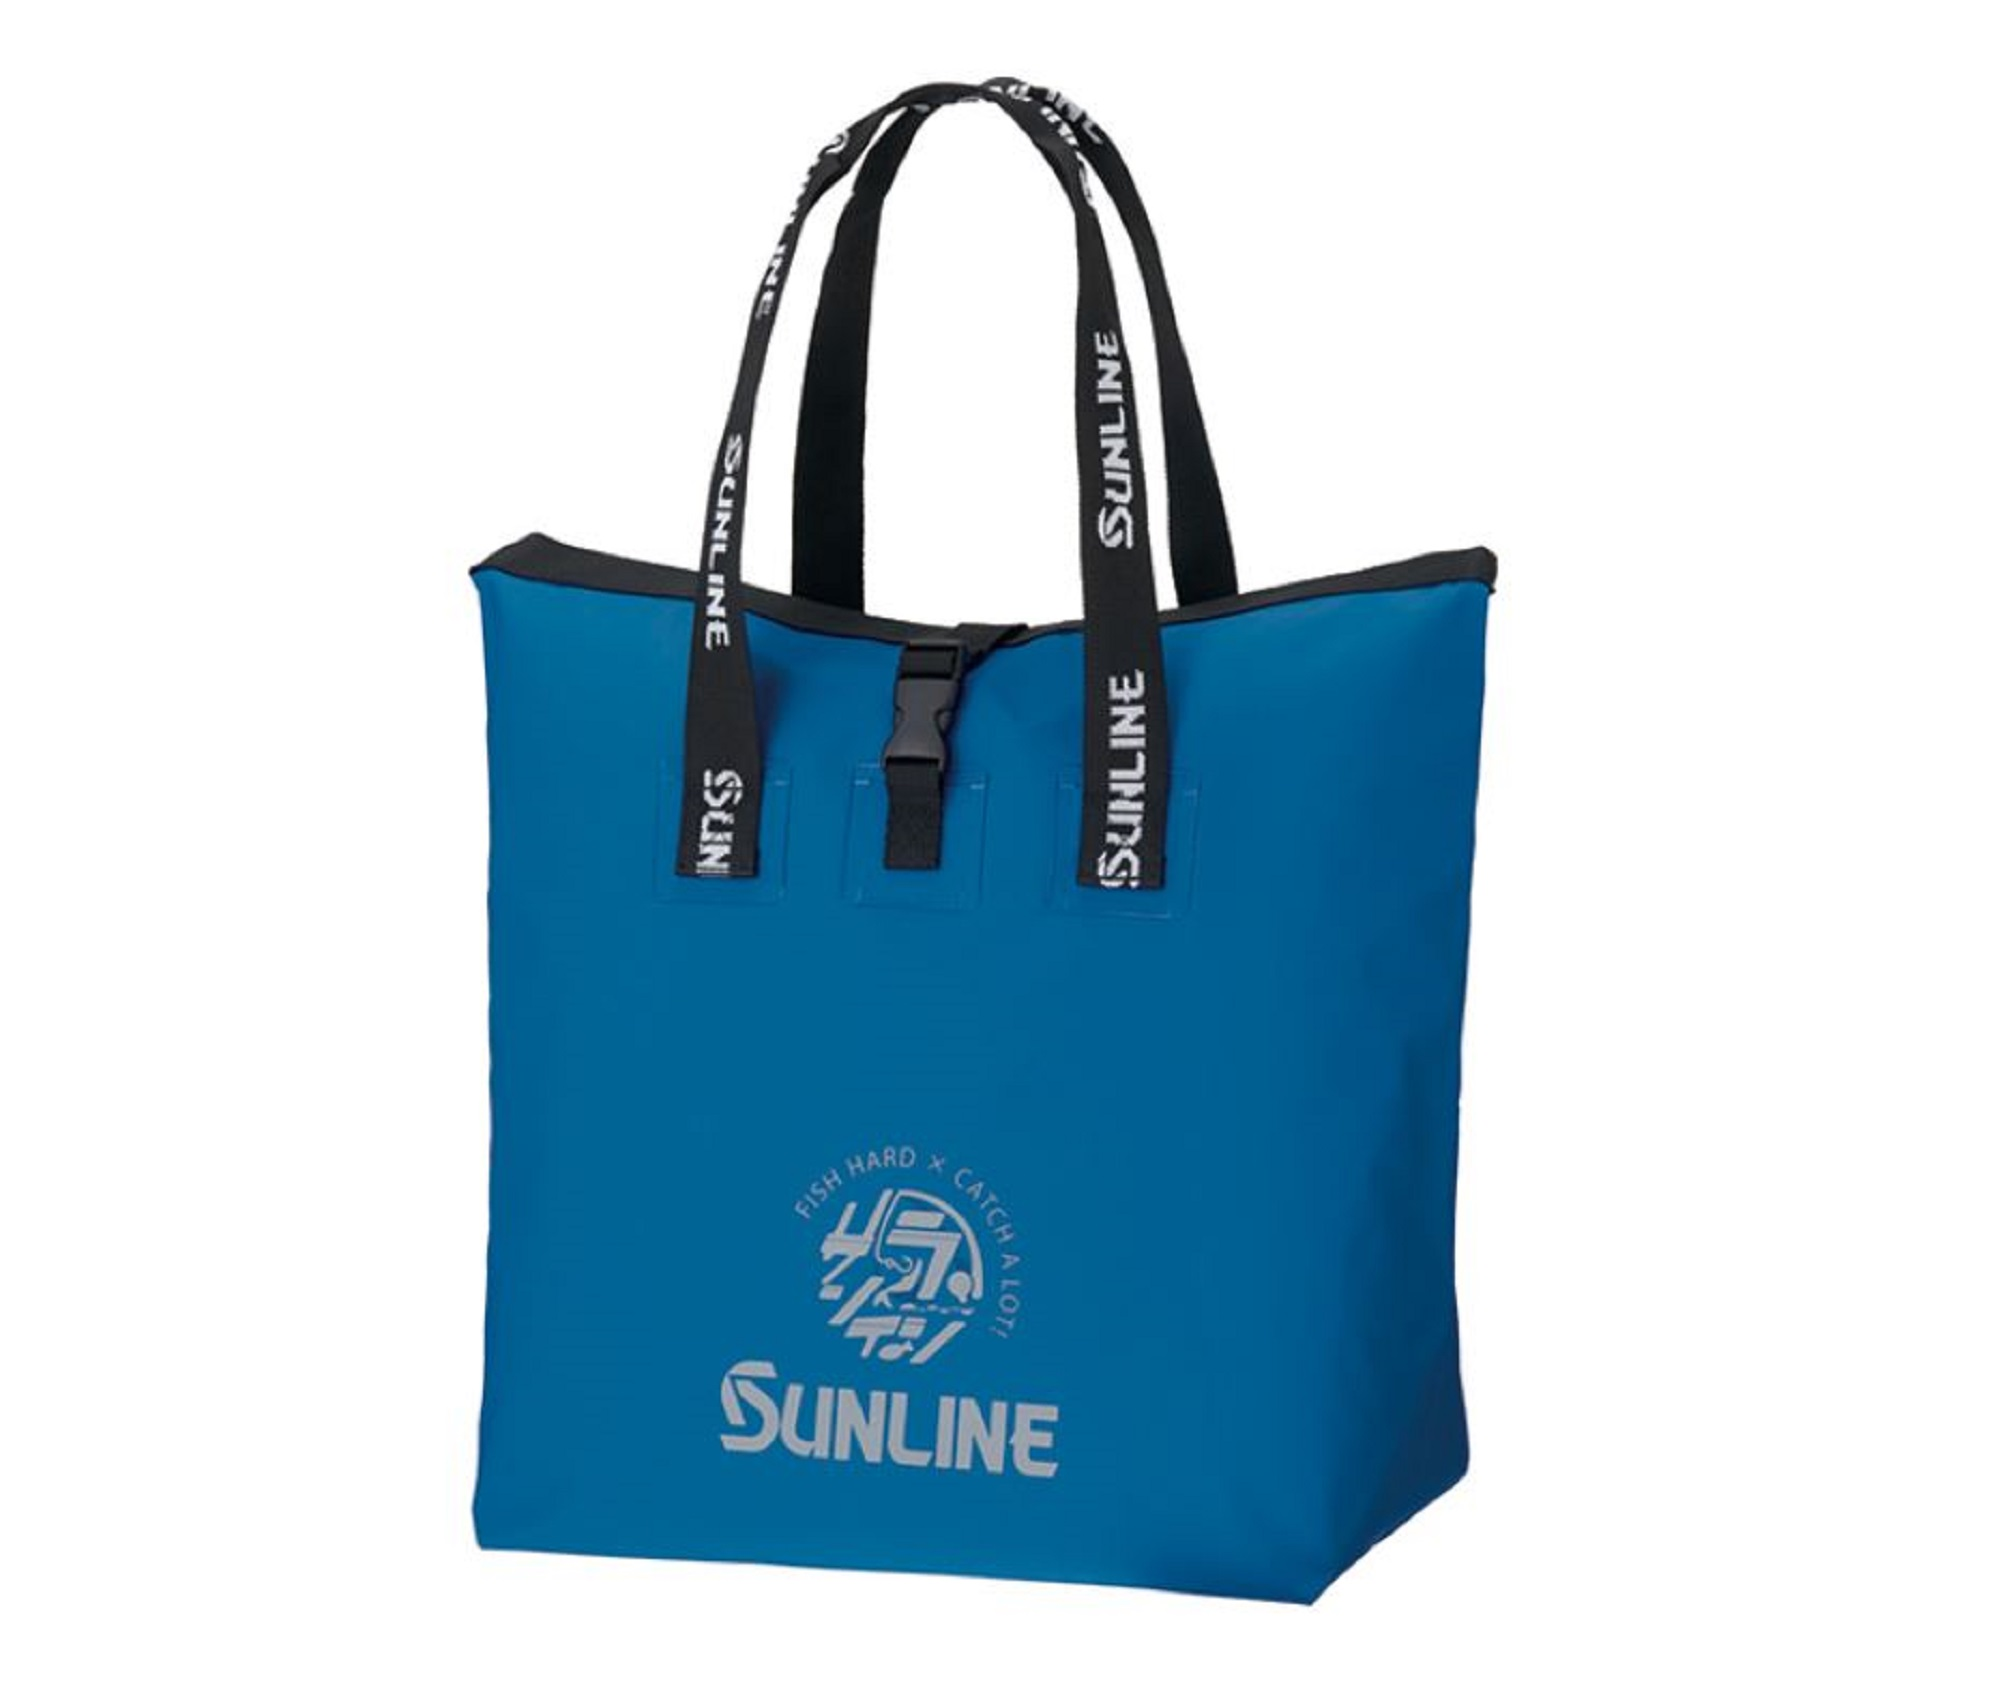 Sunline SFB-0721 Water Proof Tote Bag 480 x 500 x 250 mm Navy (5020)